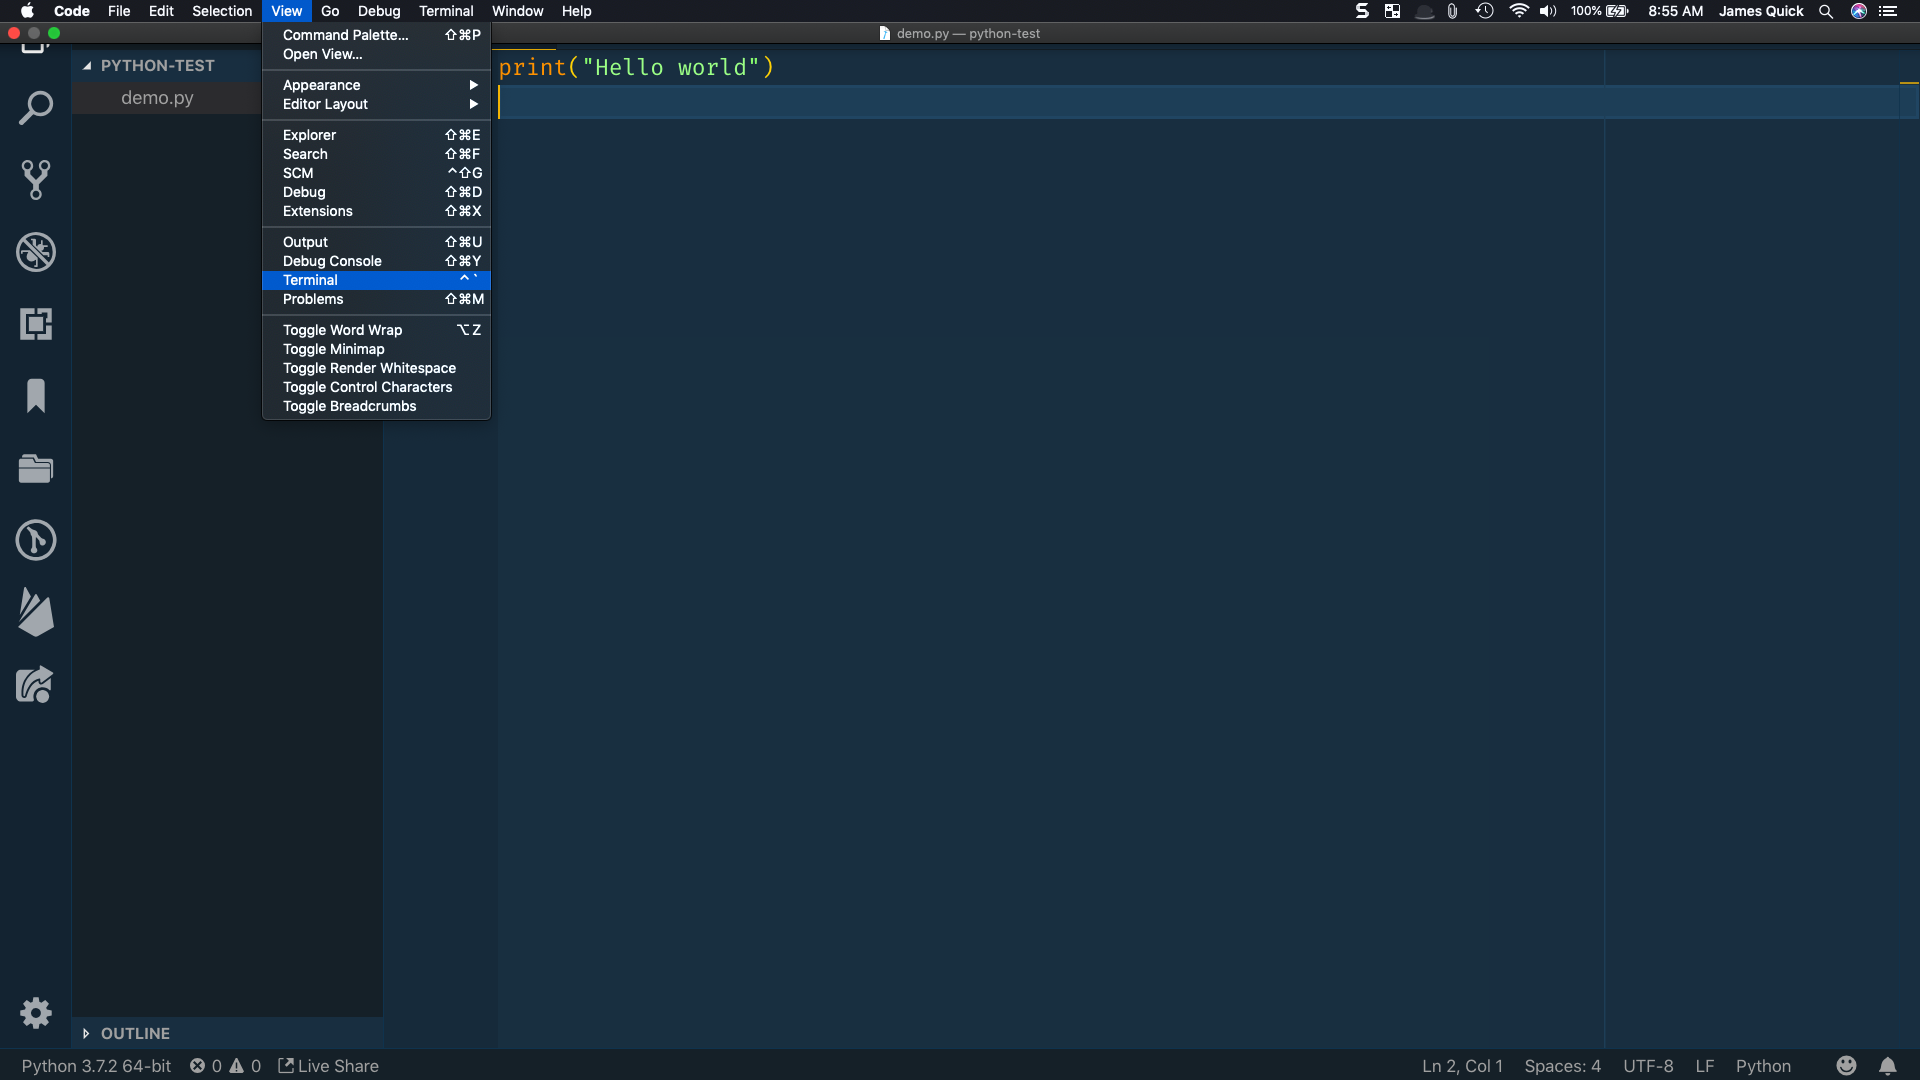 View menu open with Terminal selected